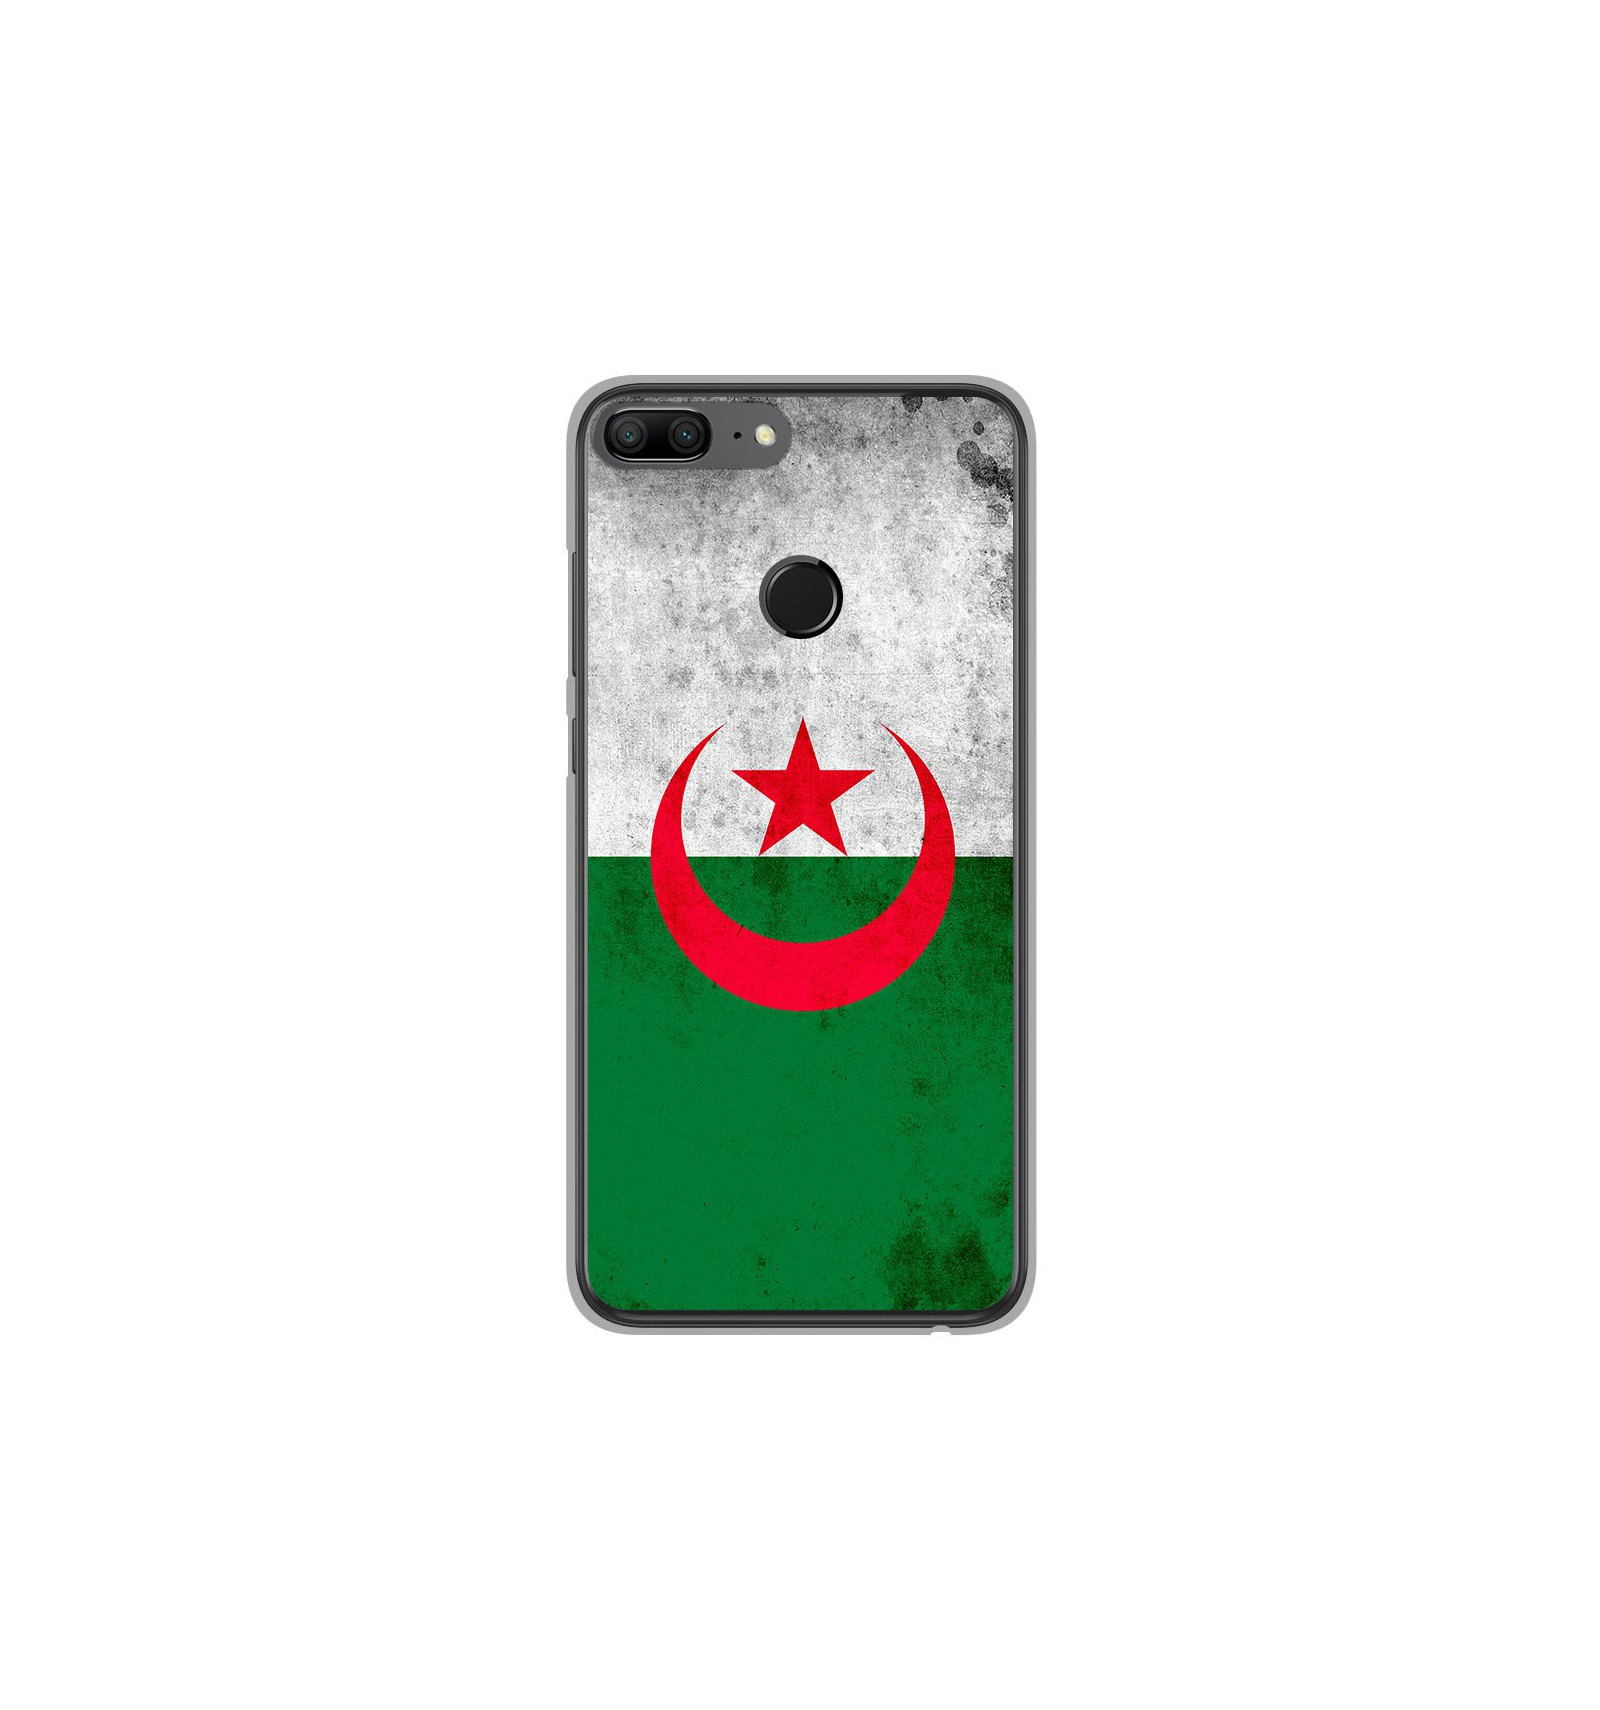 amazon picked up release info on Coque en silicone Huawei Honor 9 Lite - Drapeau Algérie